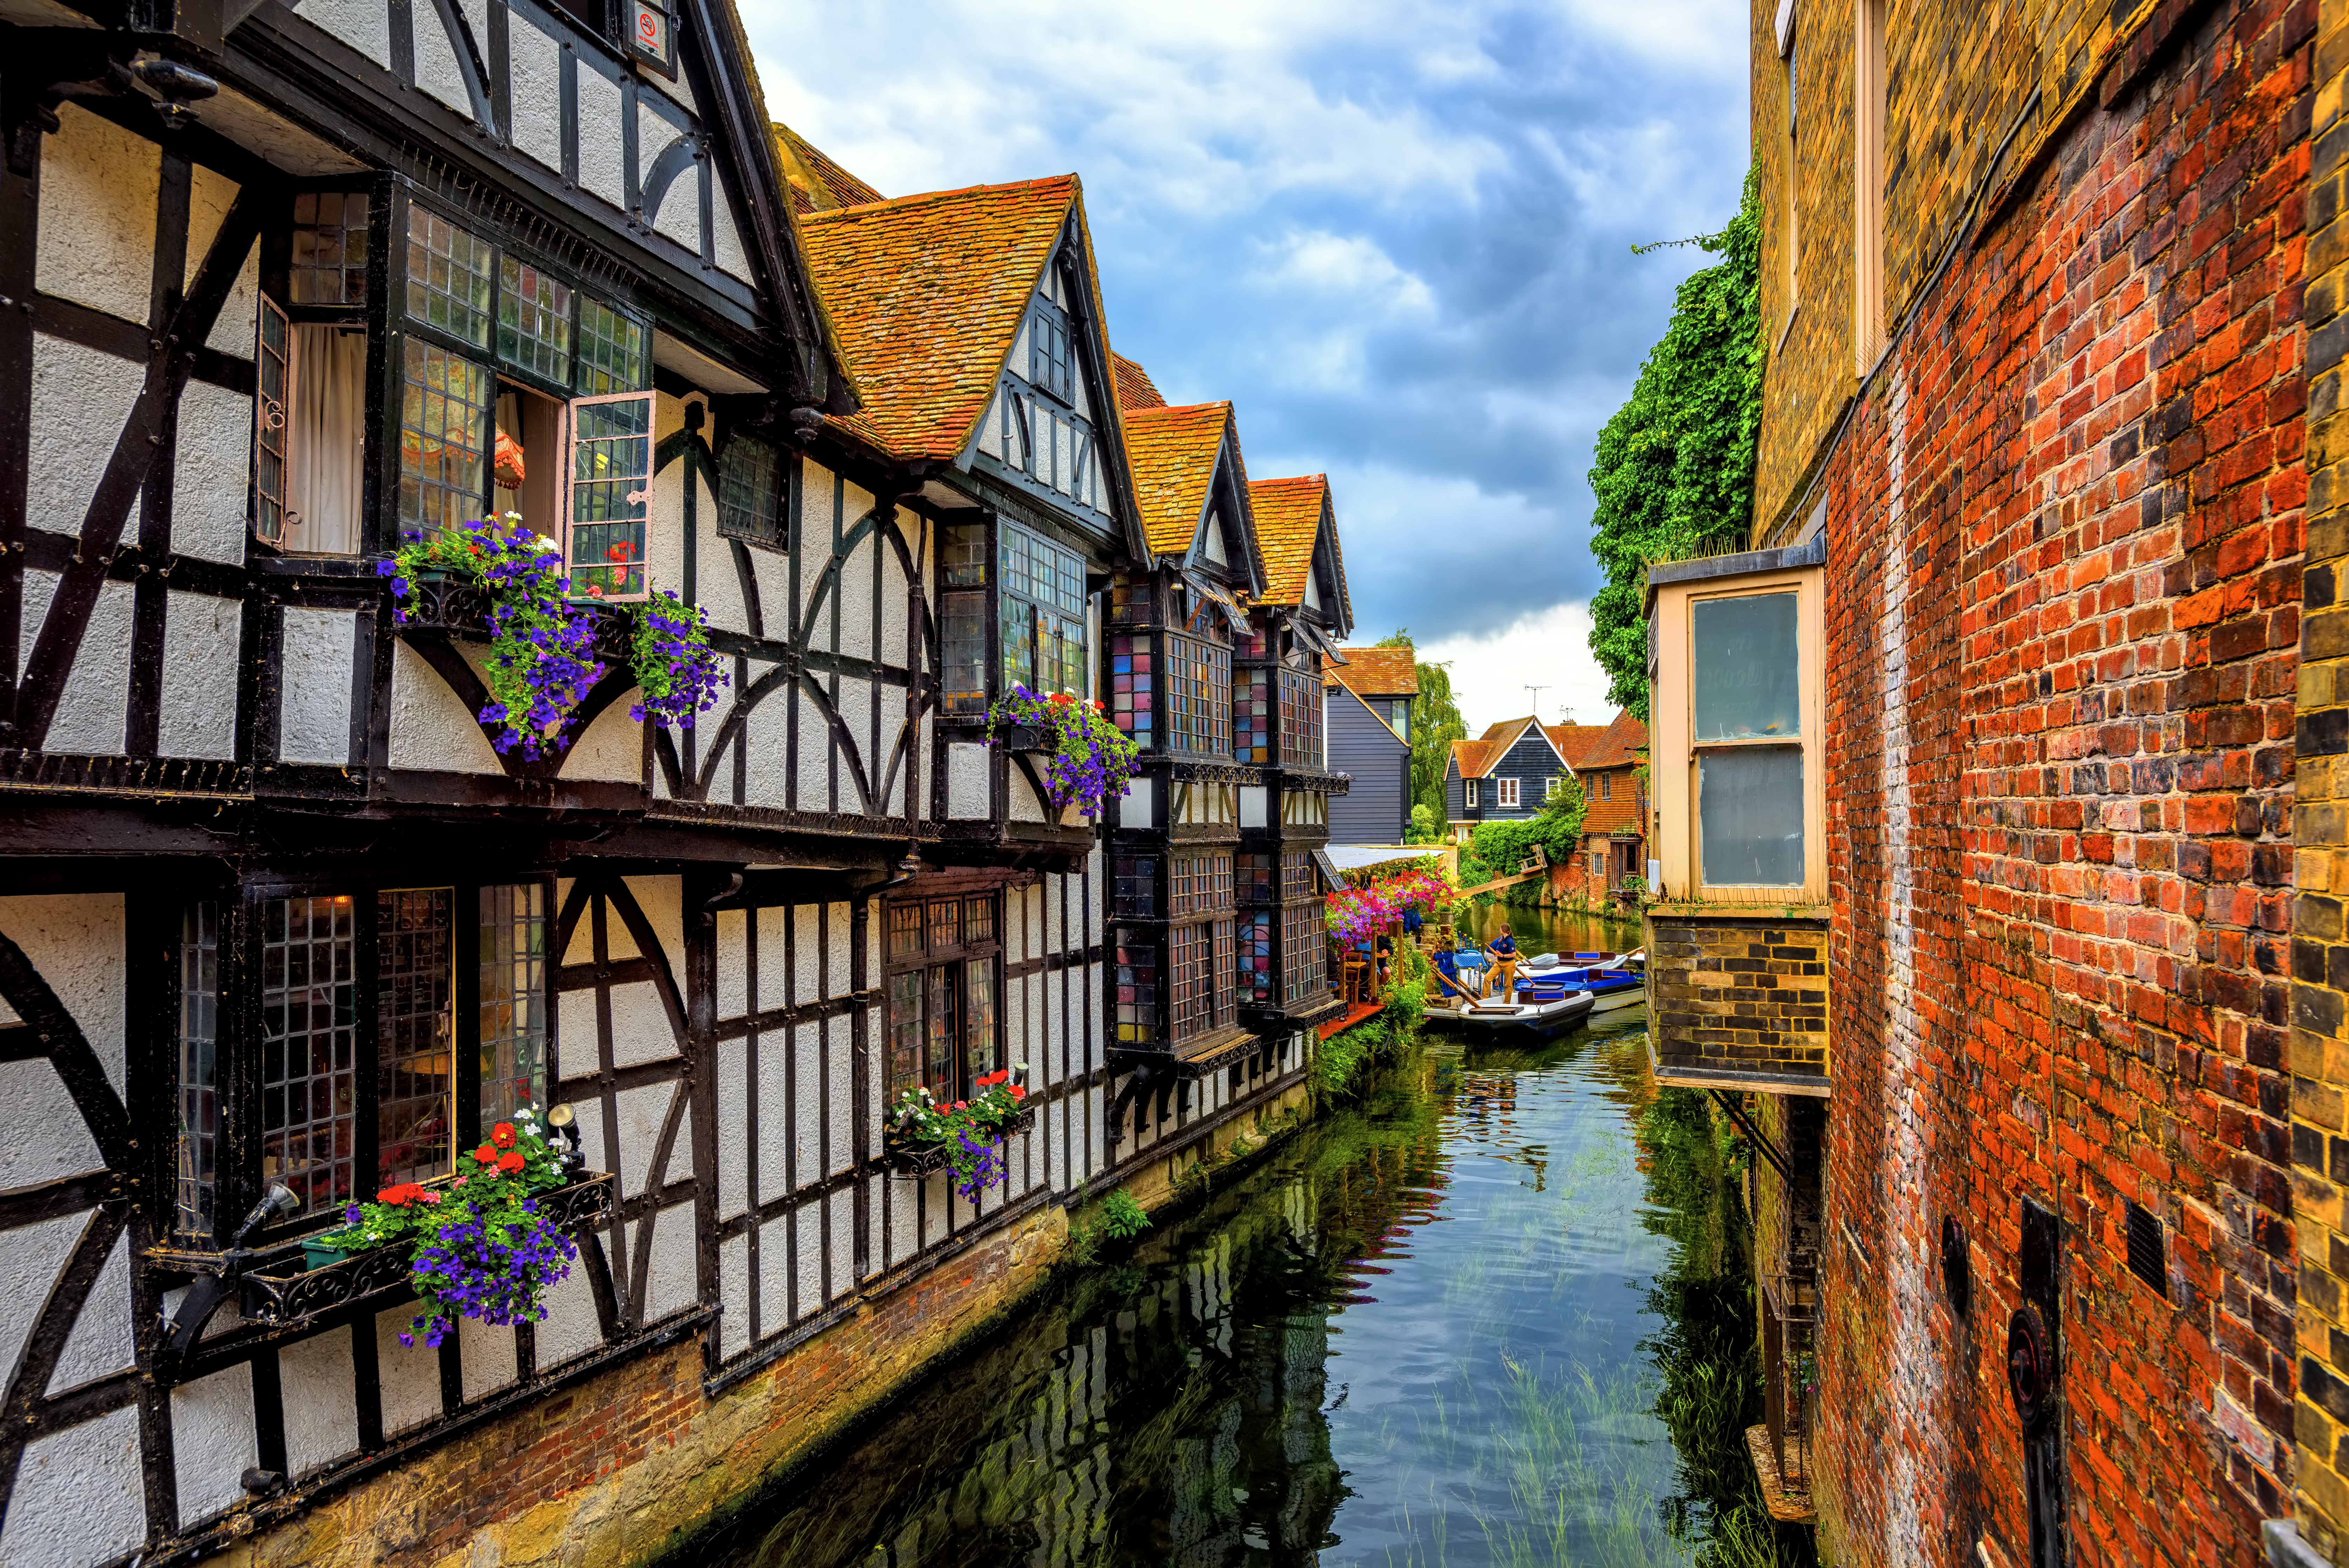 Medieval half-timber houses and Stour ri